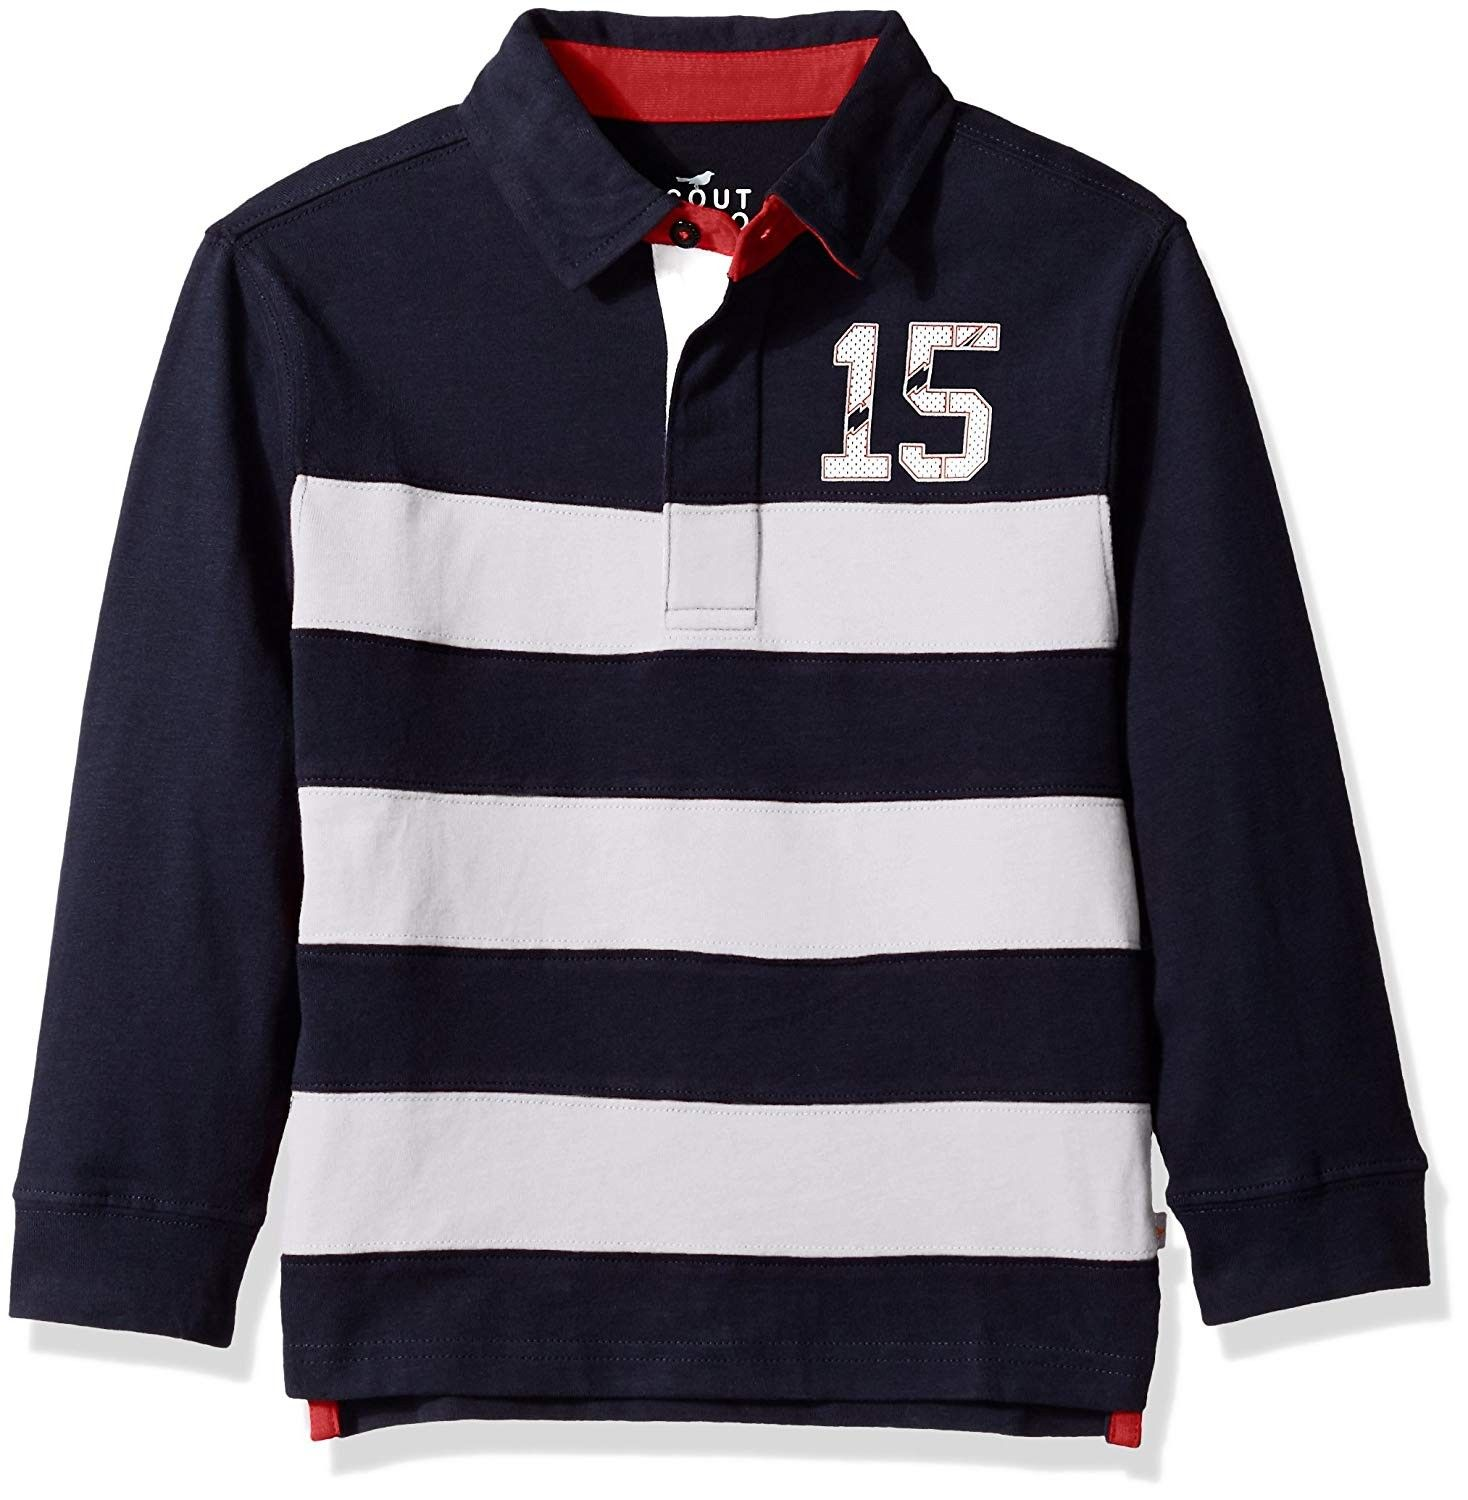 Boys Long Sleeve Stripe Rugby Shirt Swim Navy White Ct12dp9mwzp Boys Long Sleeve Rugby Shirt Boys Clothes Online